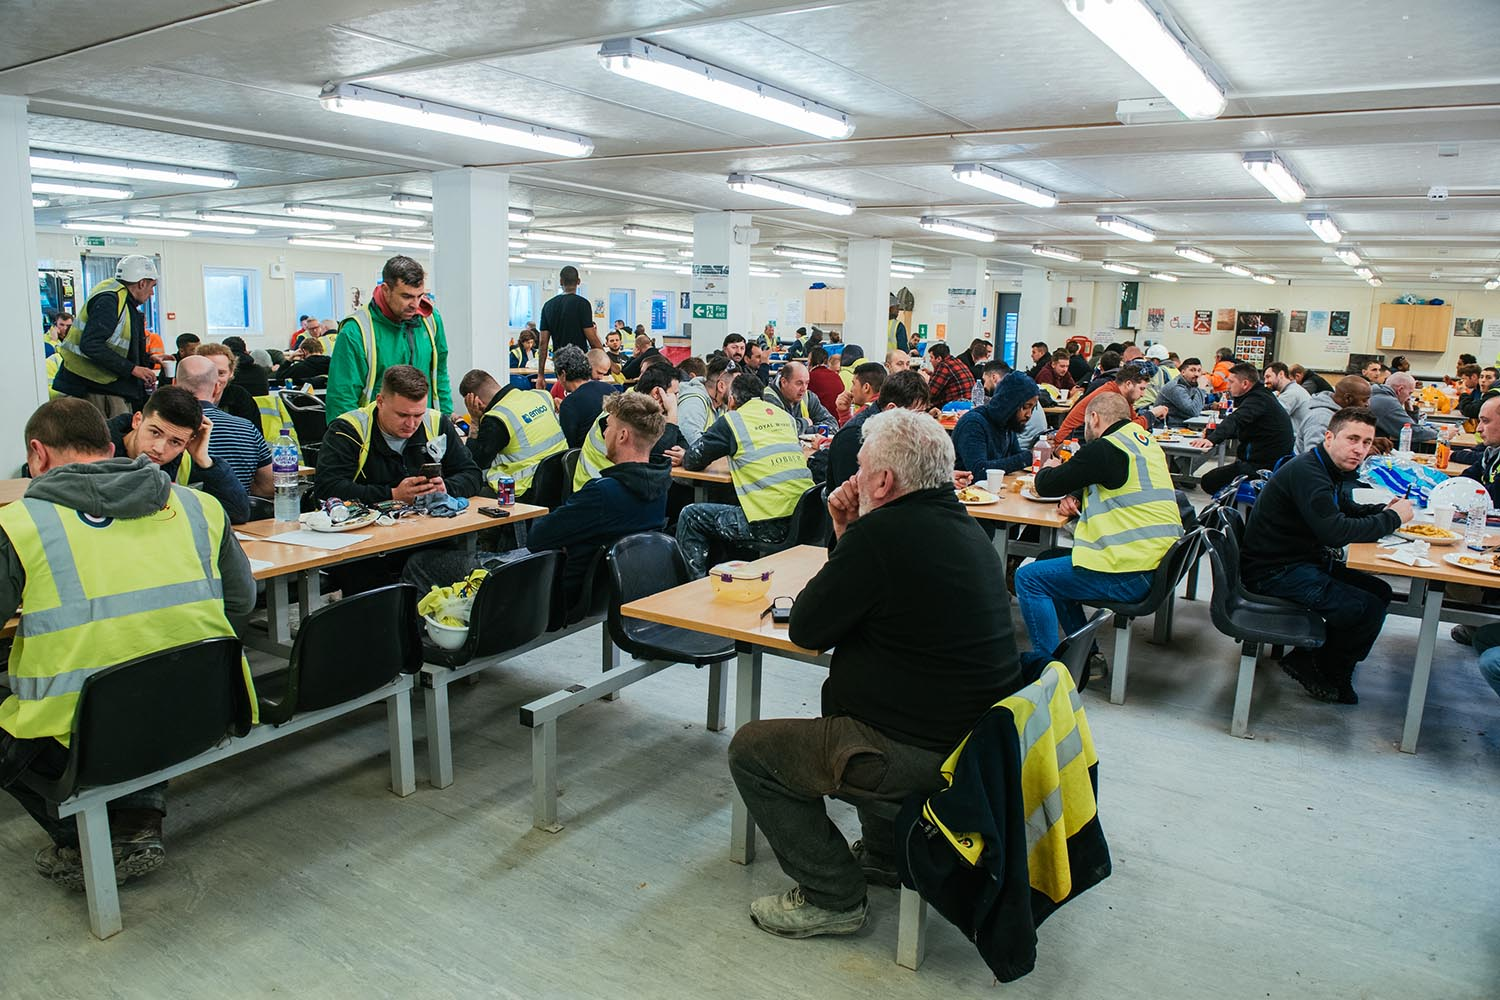 Construction Site Canteen Services - Jolly's Catering